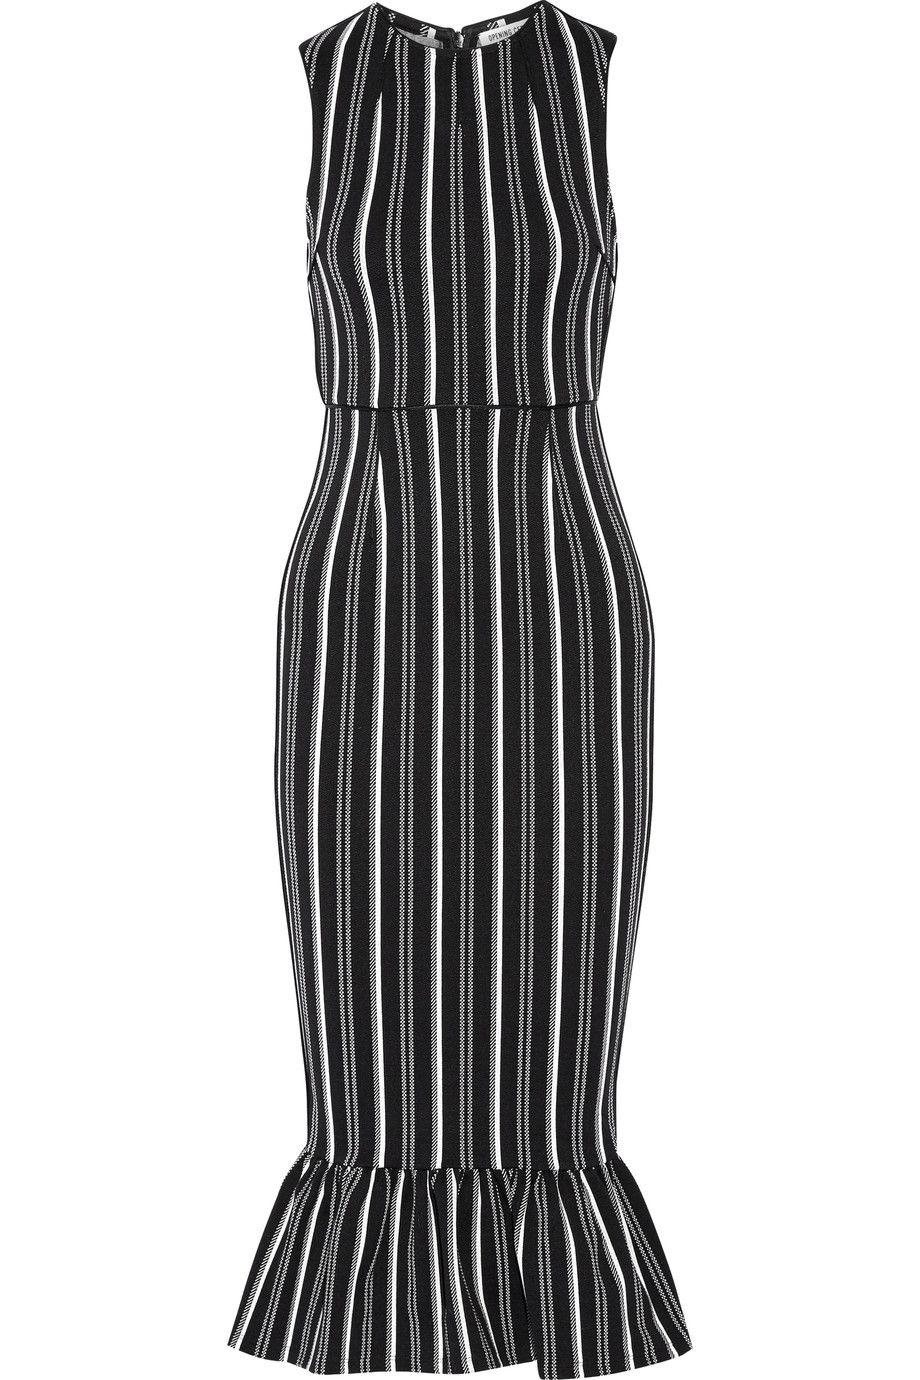 OPENING CEREMONY Lotus striped textured-jersey dress. #openingceremony  #cloth #dress